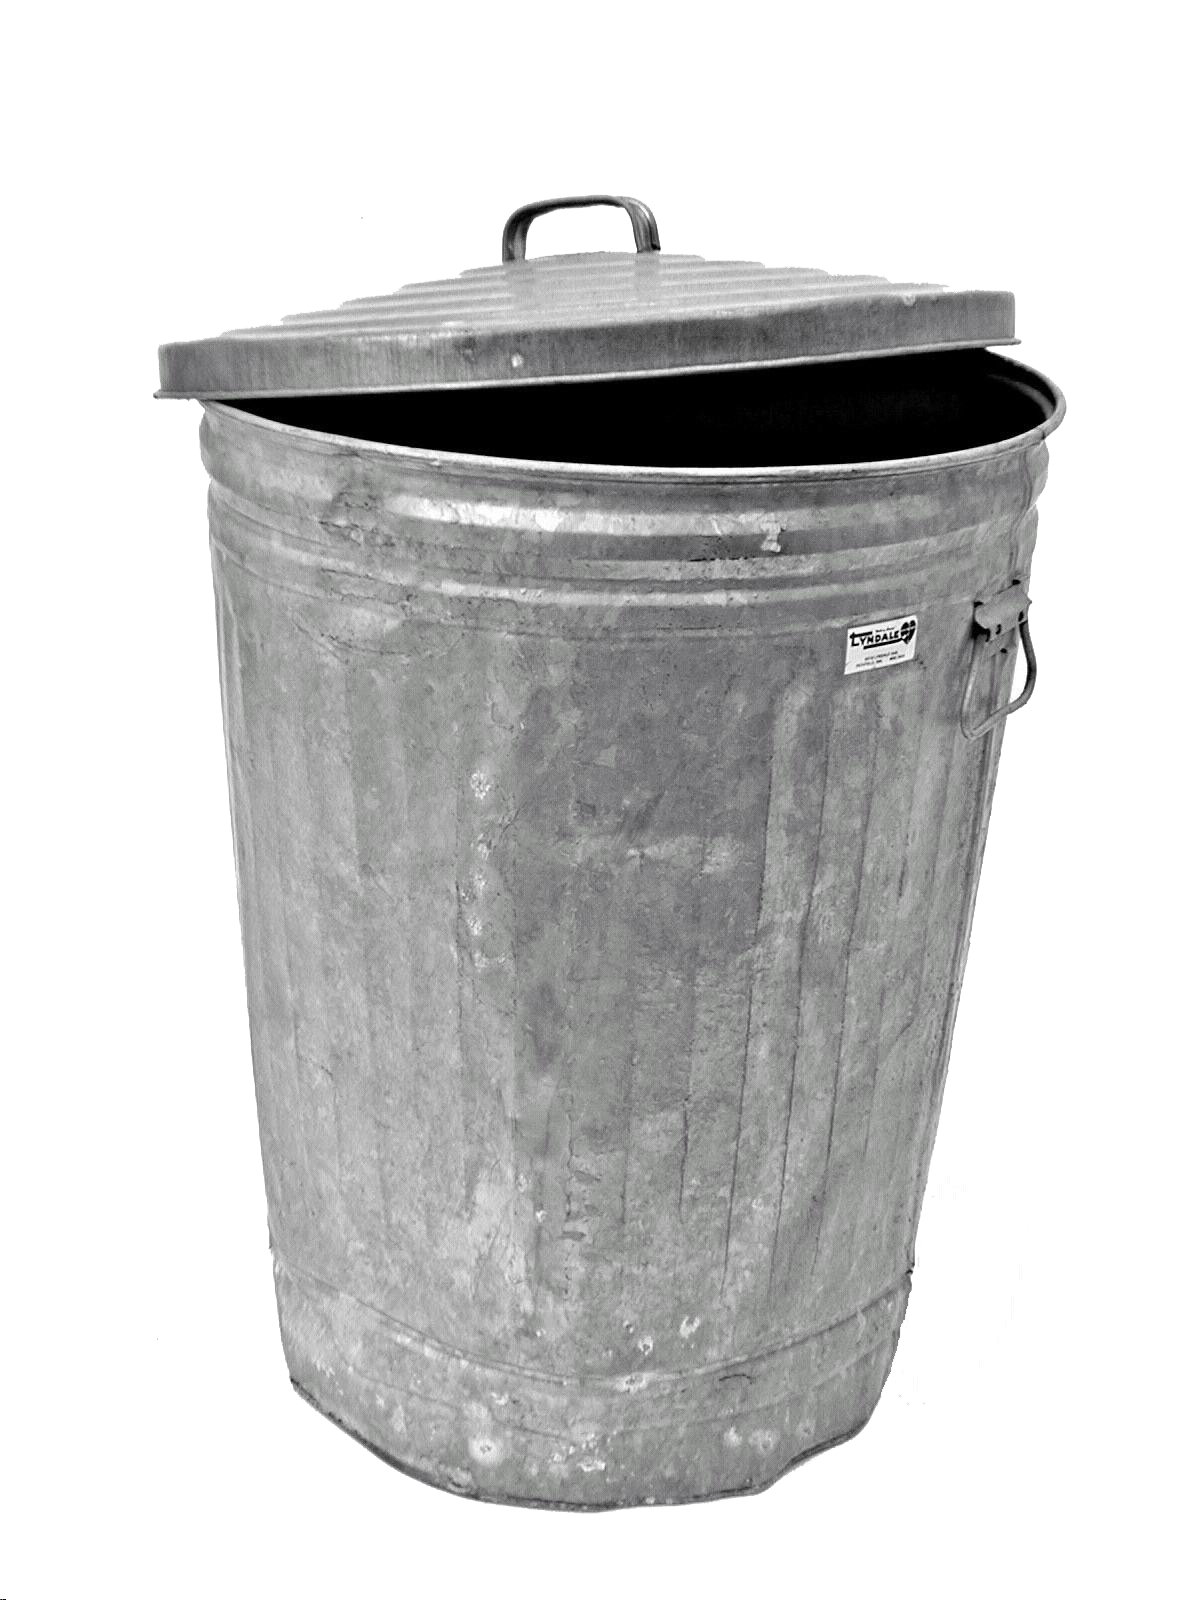 Trash Can PNG - 10440